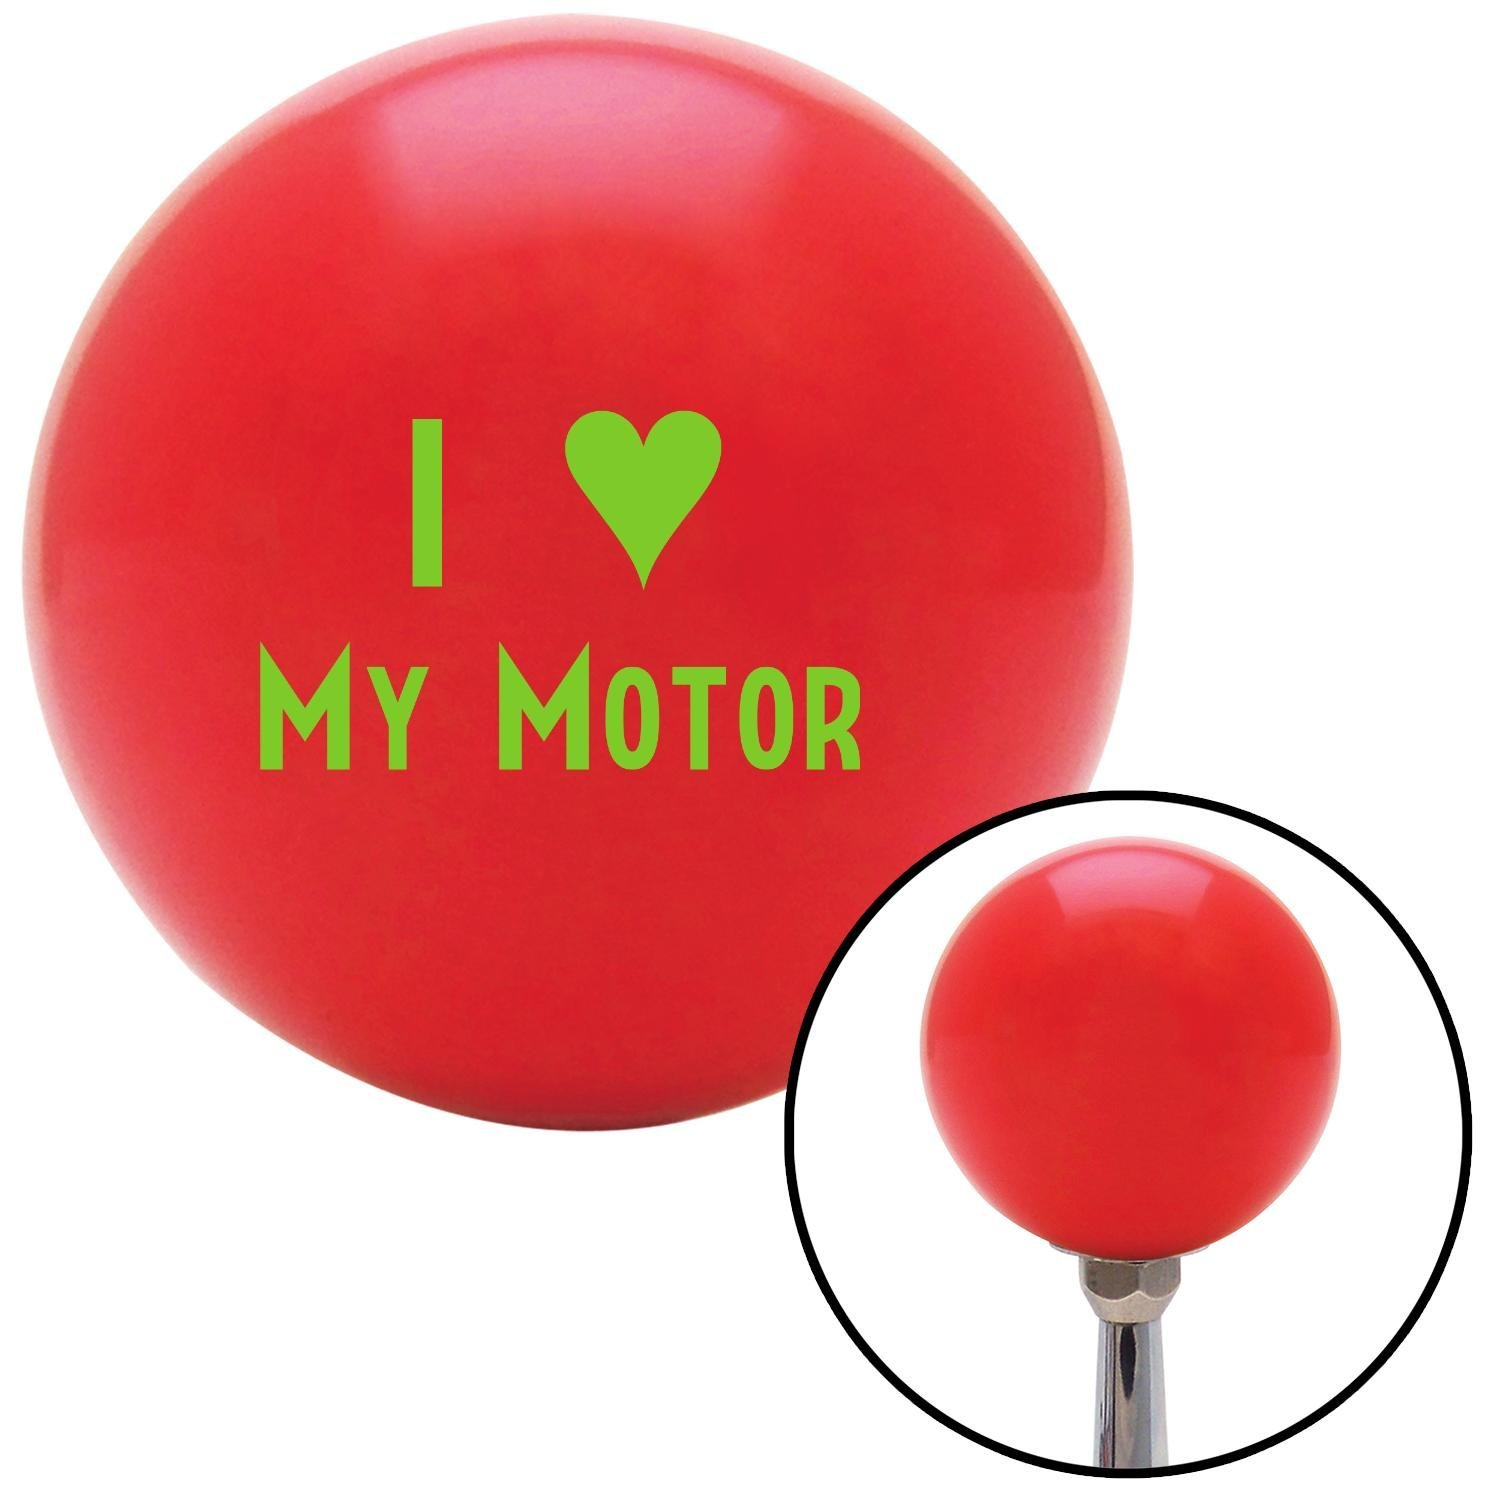 Green I 3 My Motor American Shifter 96786 Red Shift Knob with M16 x 1.5 Insert